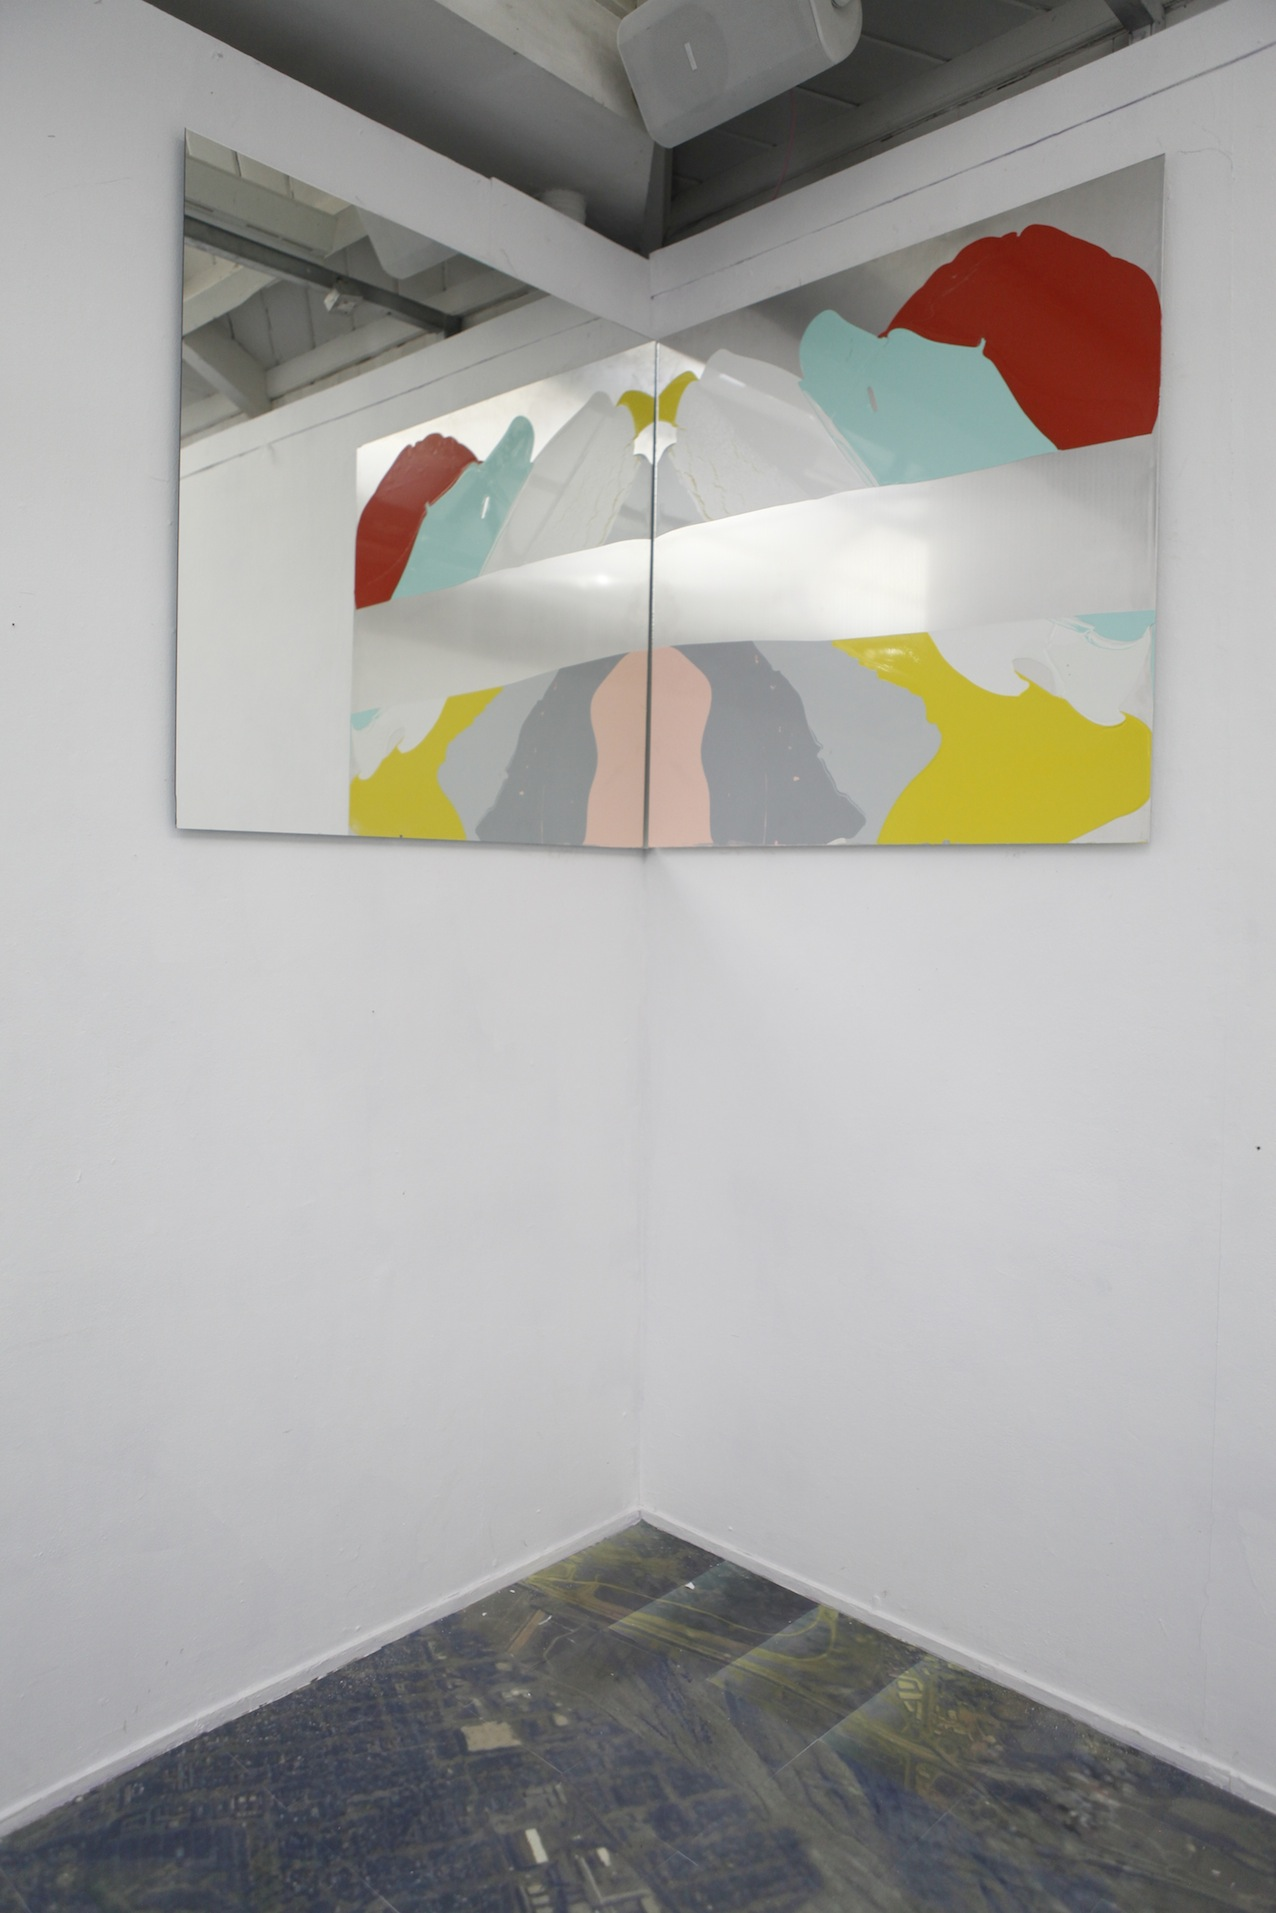 Surface I, installation view, 2014/ 2015, gloss paint on aluminium and mirror, each one 120 cm x 120 cm